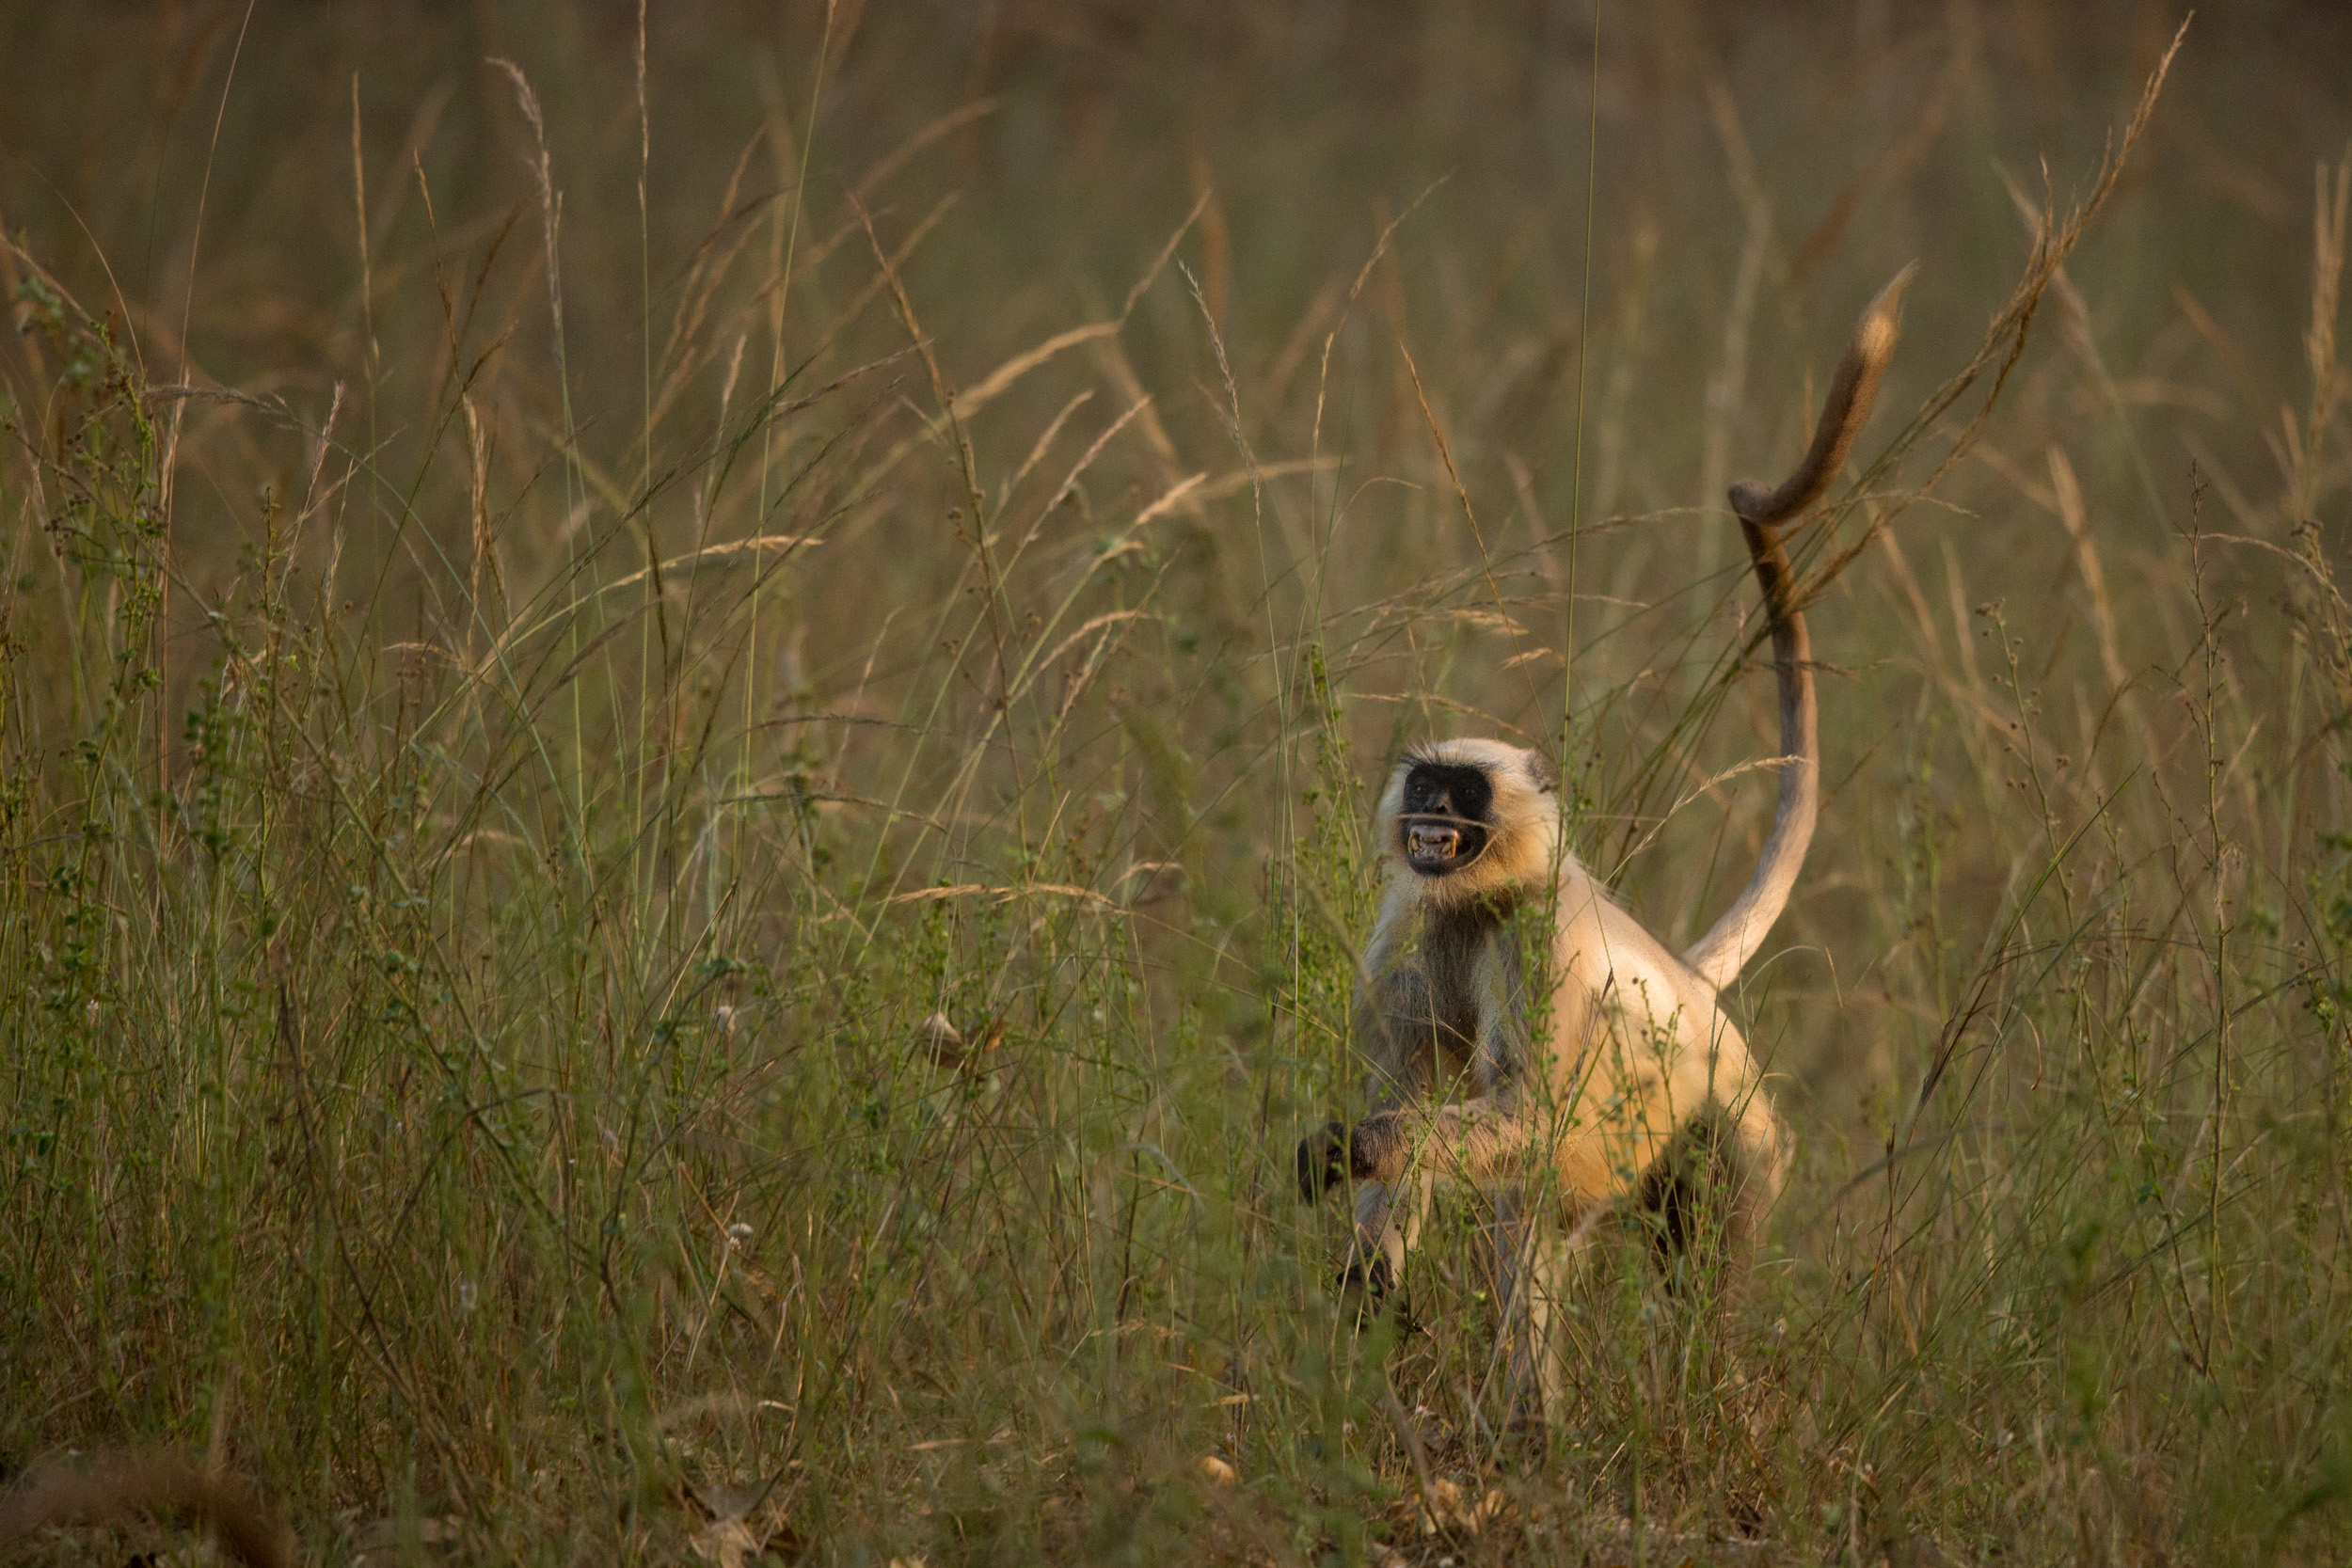 Grey Langur (Semnopithecus) running for the next tree cover. CLICK IMAGE for full screen.